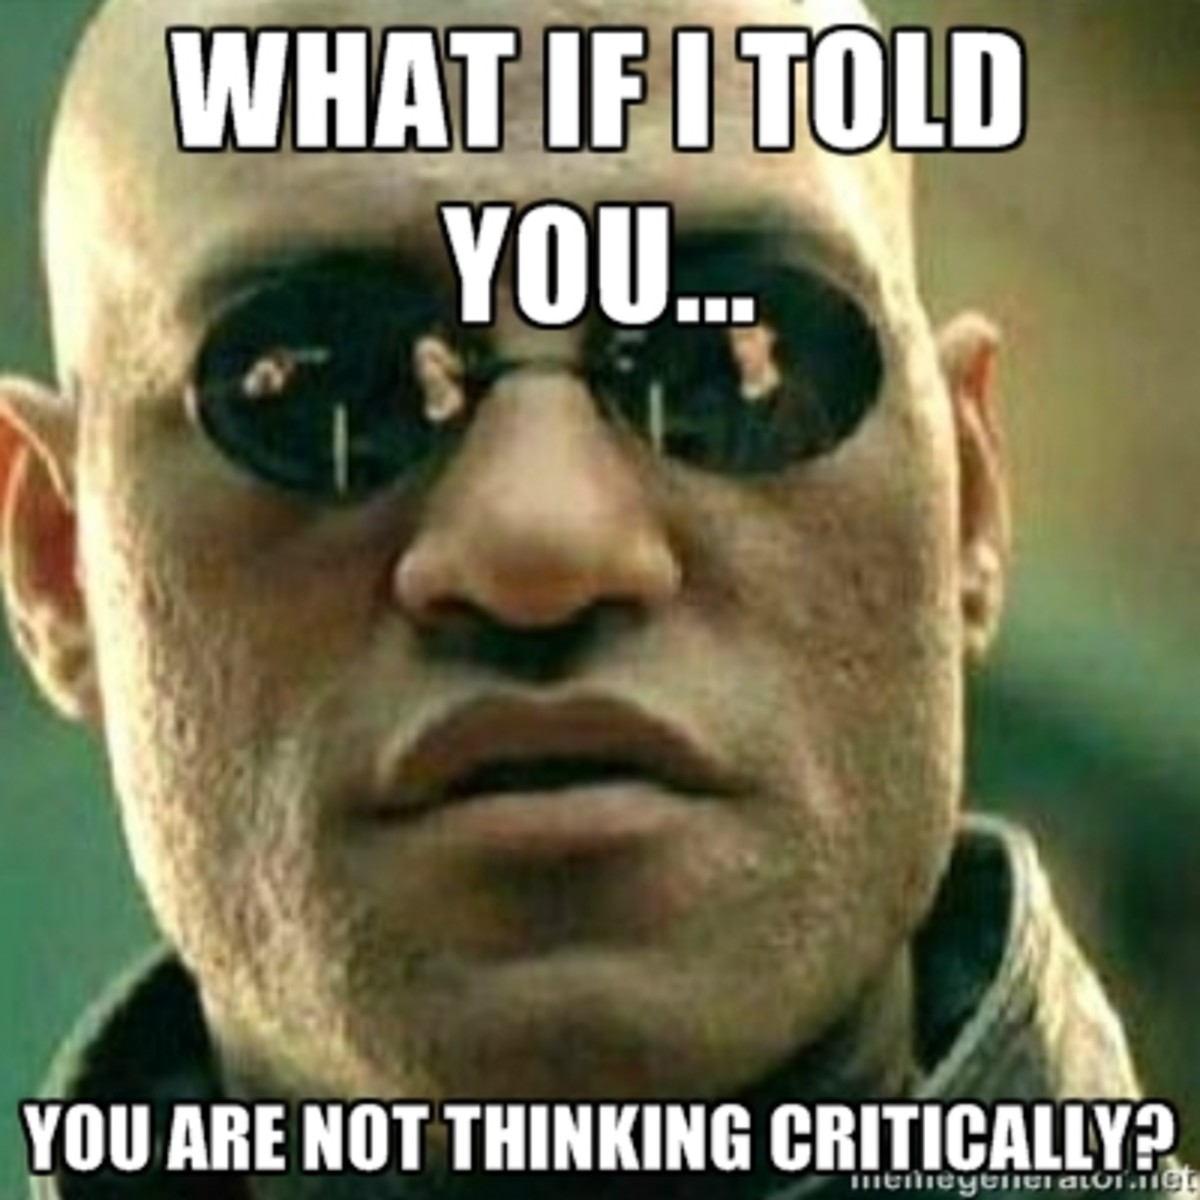 Super-Short Guide to Critical Thinking and Logic for income opportunity seekers